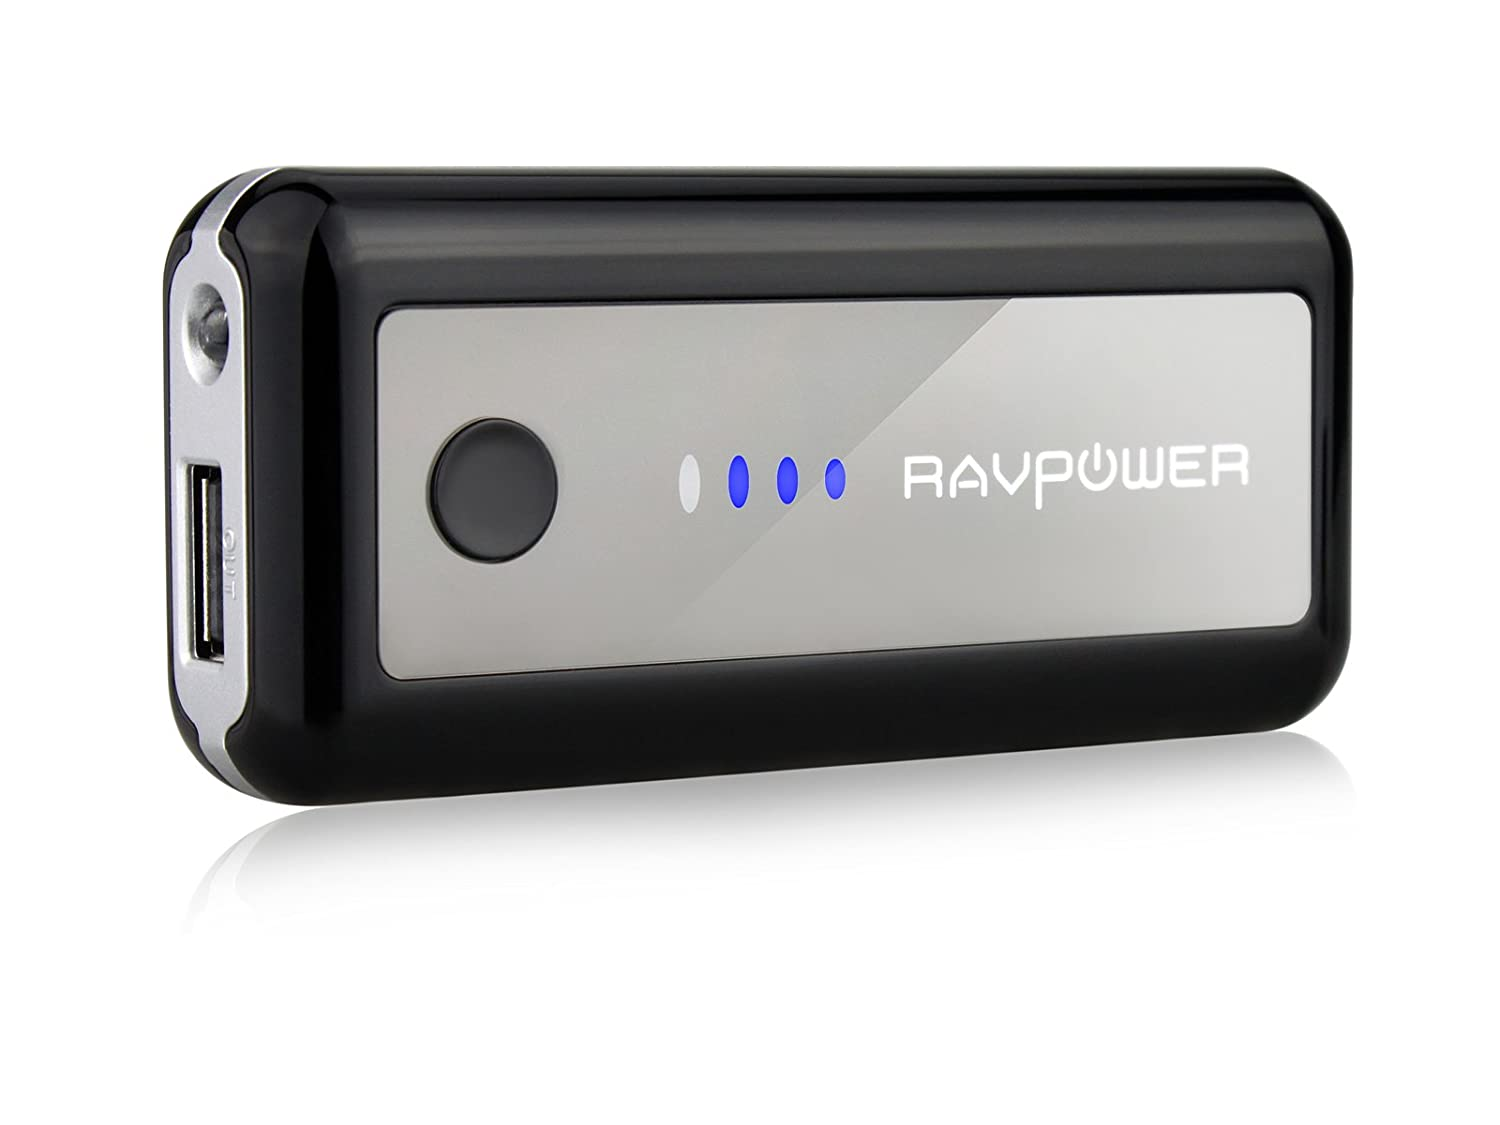 RAVPower® 5600mAh External Backup Battery Pack Charger / Power Bank $19.99